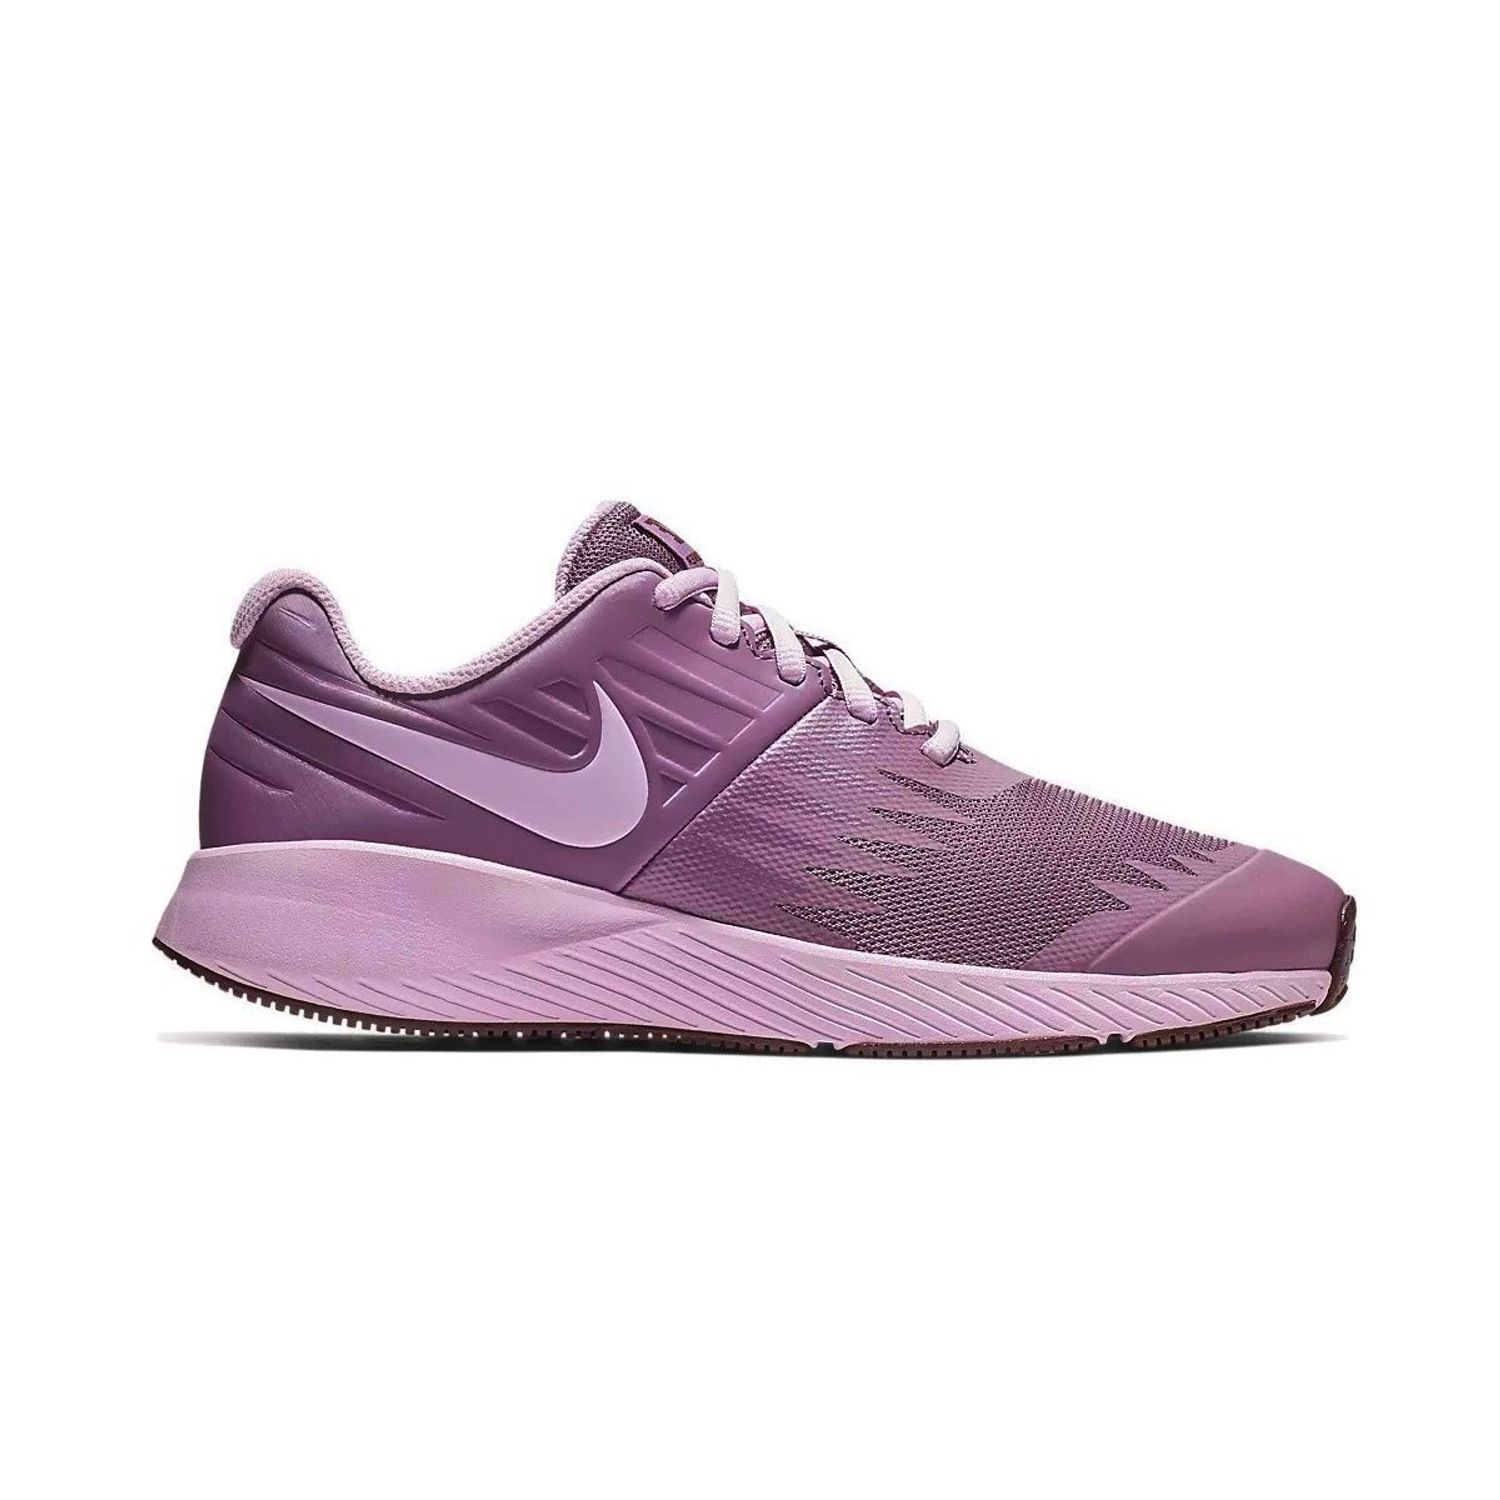 RunnergsJovenes Zapatillas Nike Nike Nike Star Sporting Zapatillas RunnergsJovenes Star Sporting Zapatillas eEQdxoWrBC